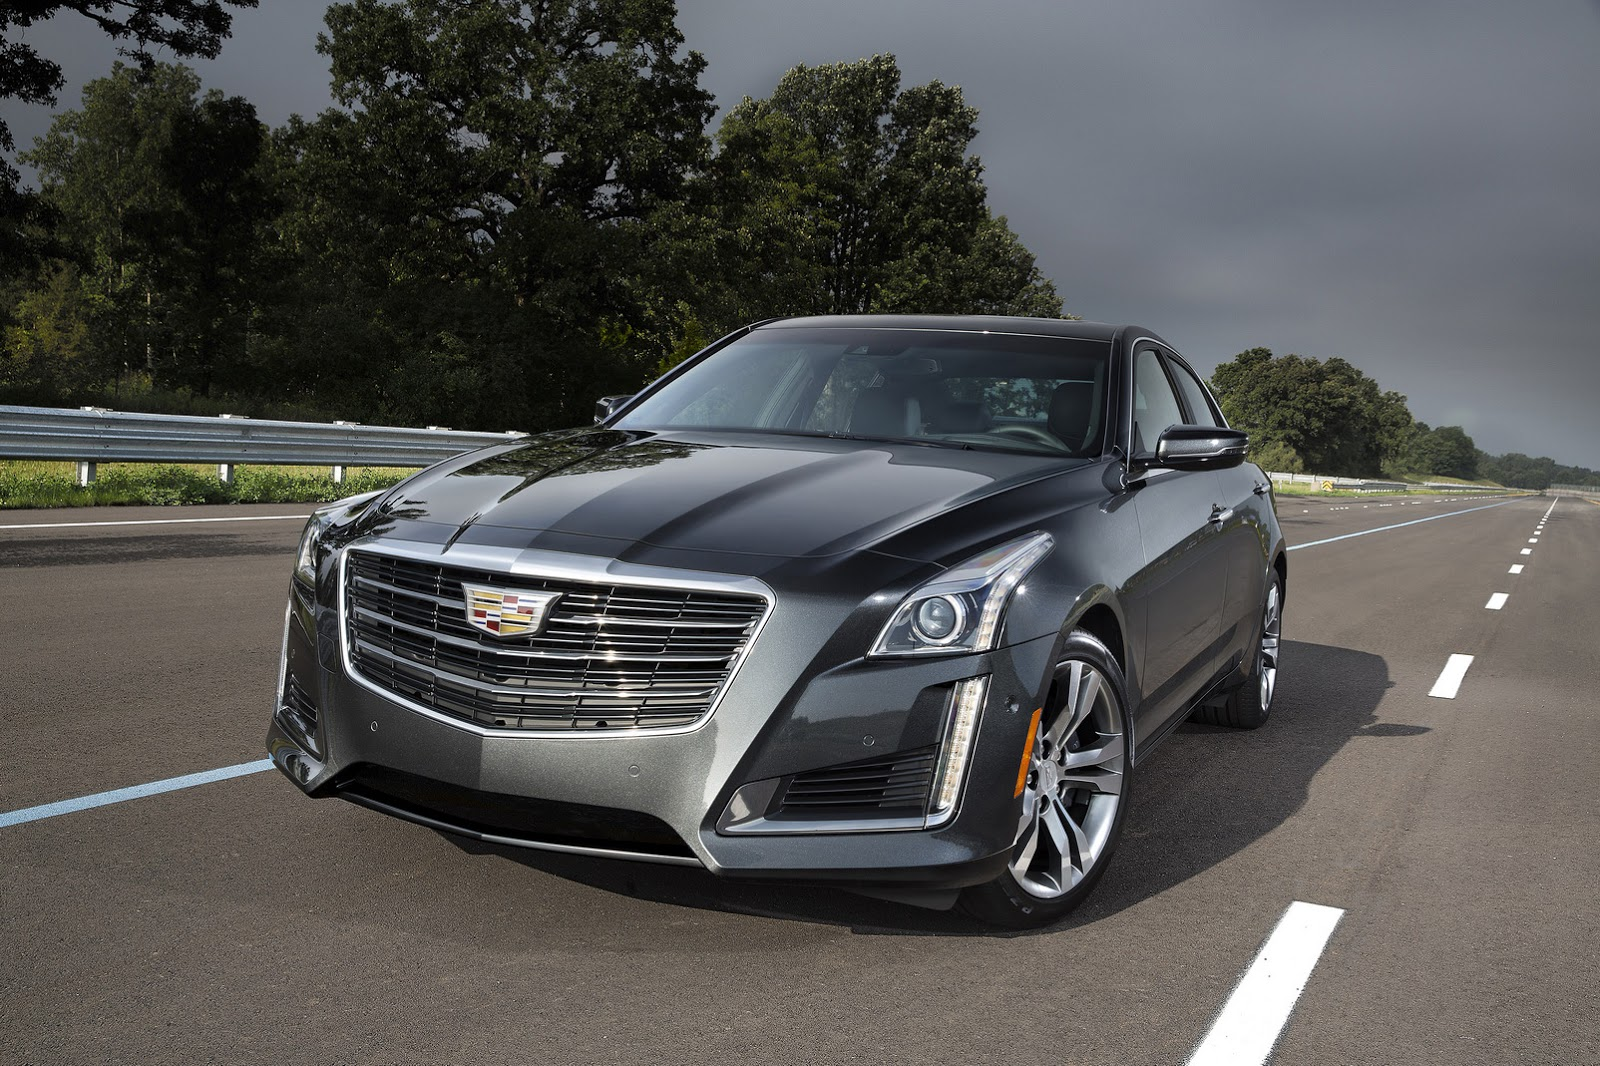 2016 cadillac ats and cts get new v6 8 speed auto and start stop carscoops. Black Bedroom Furniture Sets. Home Design Ideas